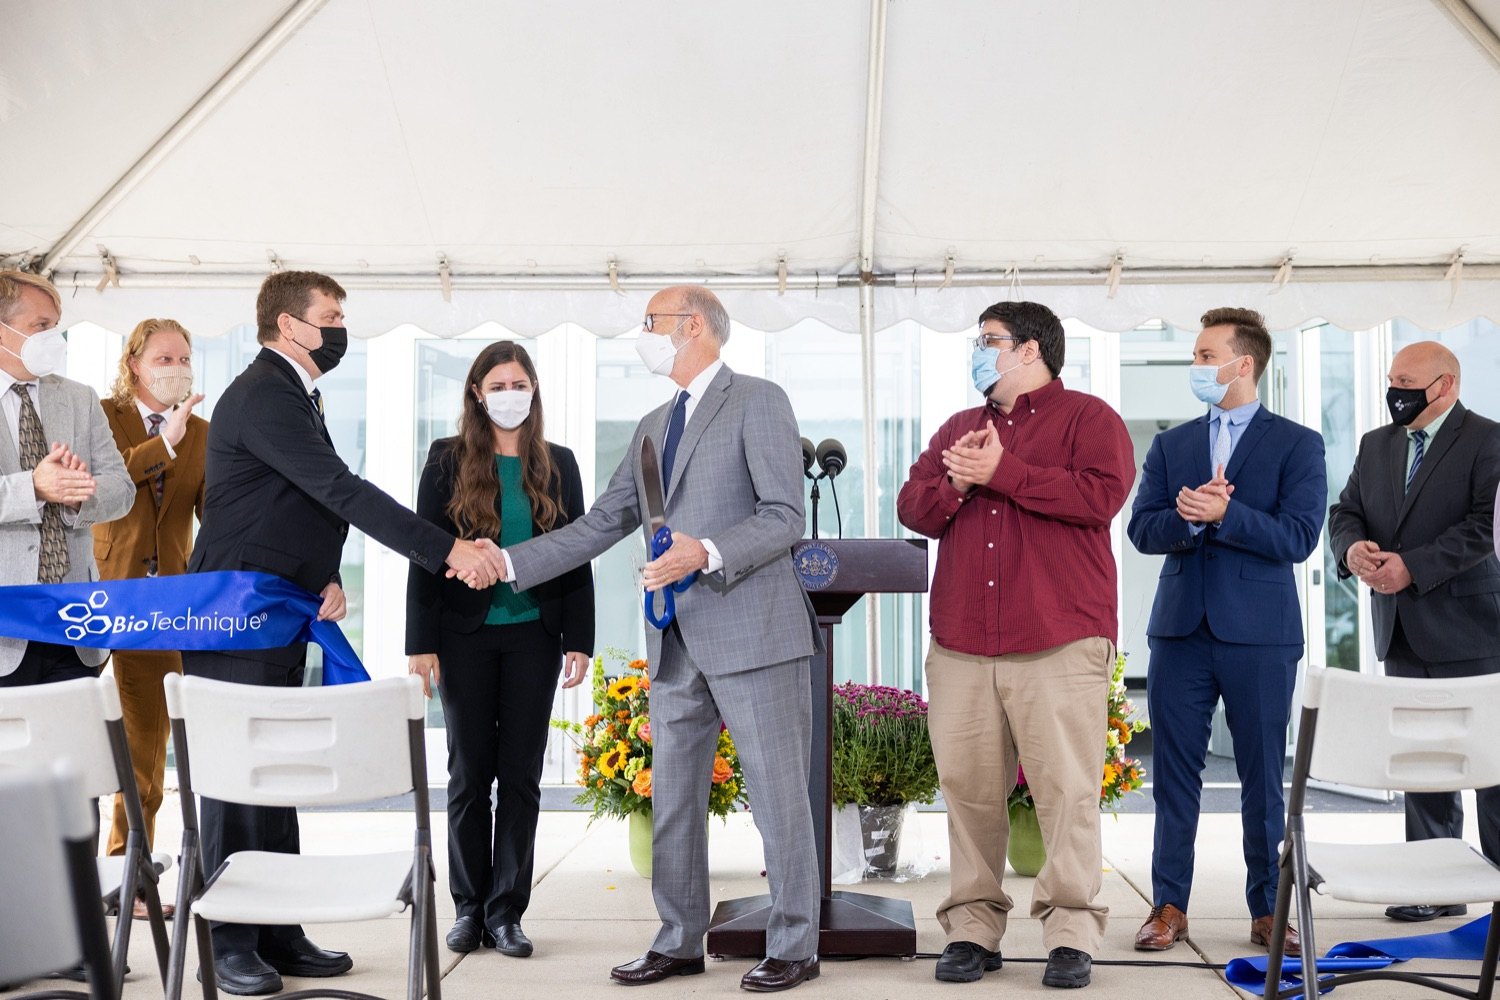 """<a href=""""https://filesource.wostreaming.net/commonwealthofpa/photo/20138_gov_BioTechniqueRibbon_dz_018.JPG"""" target=""""_blank"""">⇣Download Photo<br></a>Pennsylvania Governor Tom Wolf congratulating John Clapham, CEO, PSC Biotech Corporation & BioTechnique. Governor Tom Wolf today joined BioTechnique CEO John Clapham, the Department of Community and Economic Developments (DCED) Governors Action Team (GAT), York County Economic Alliance CEO Kevin Schreiber, and local officials at the ribbon cutting ceremony for BioTechniques new pharmaceutical manufacturing facility in York County.   OCTOBER 12, 2021 - YORK, PA"""